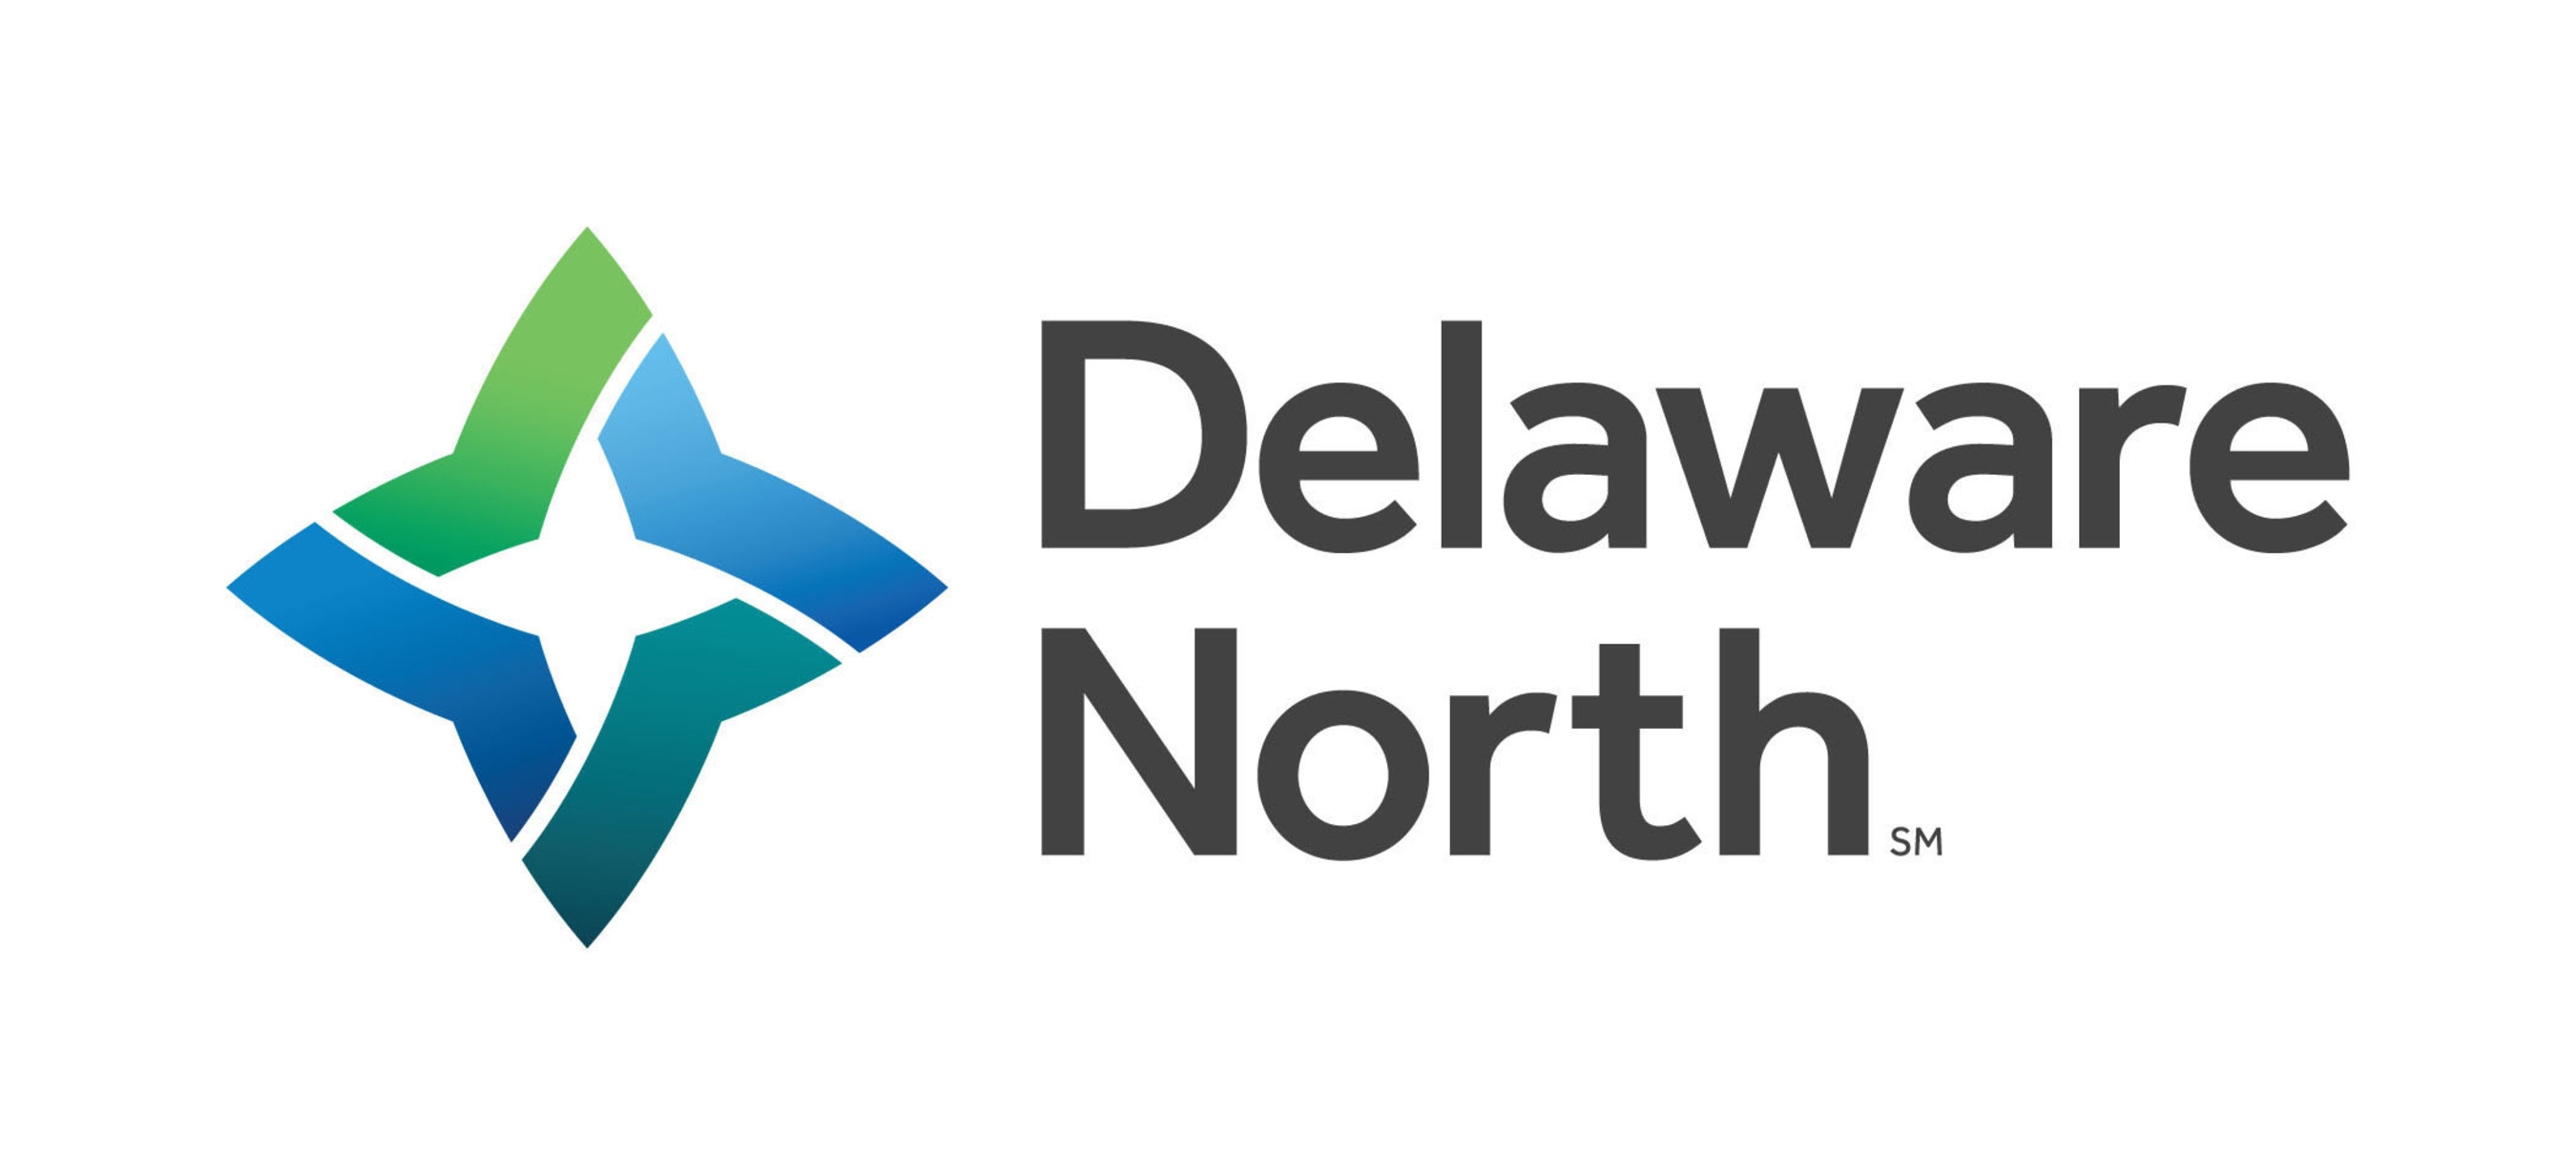 Delaware North, founded and owned by the Jacobs family for 100 years, is a global leader in hospitality and ...